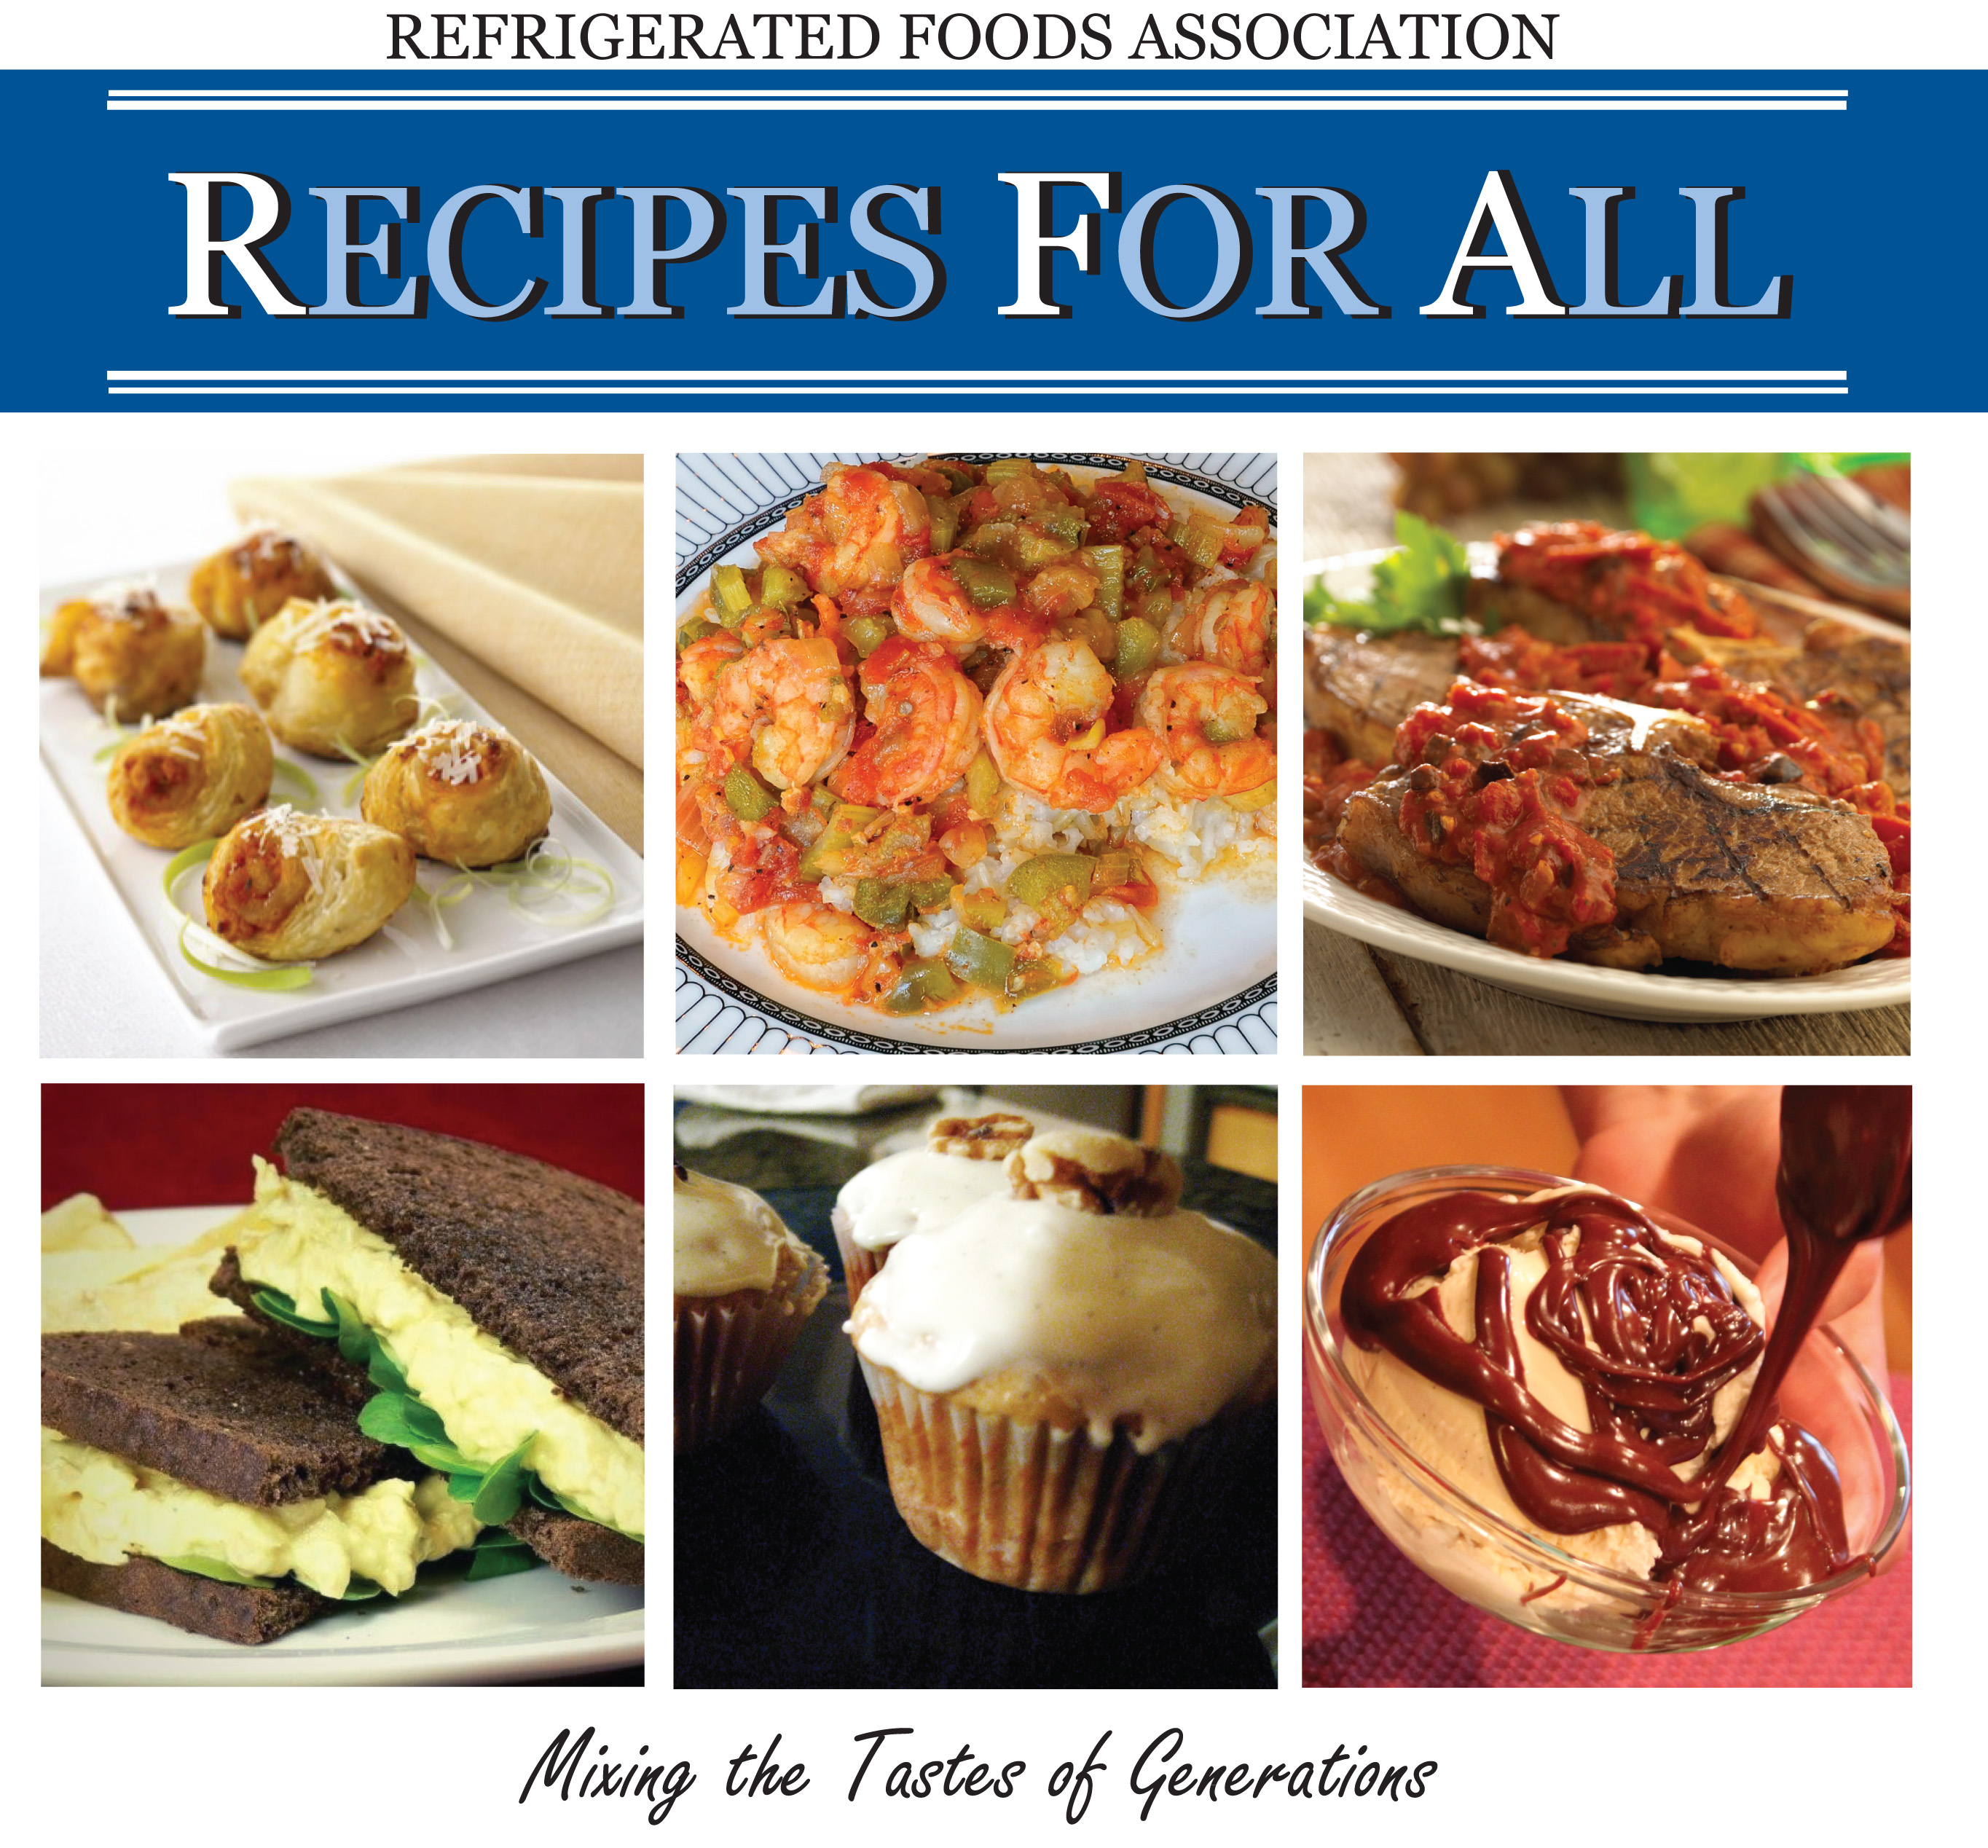 Cookbookcoverg recipes for all combines delicious recipes family traditions and memories mixing together the tastes of generations with more than forty recipes forumfinder Gallery